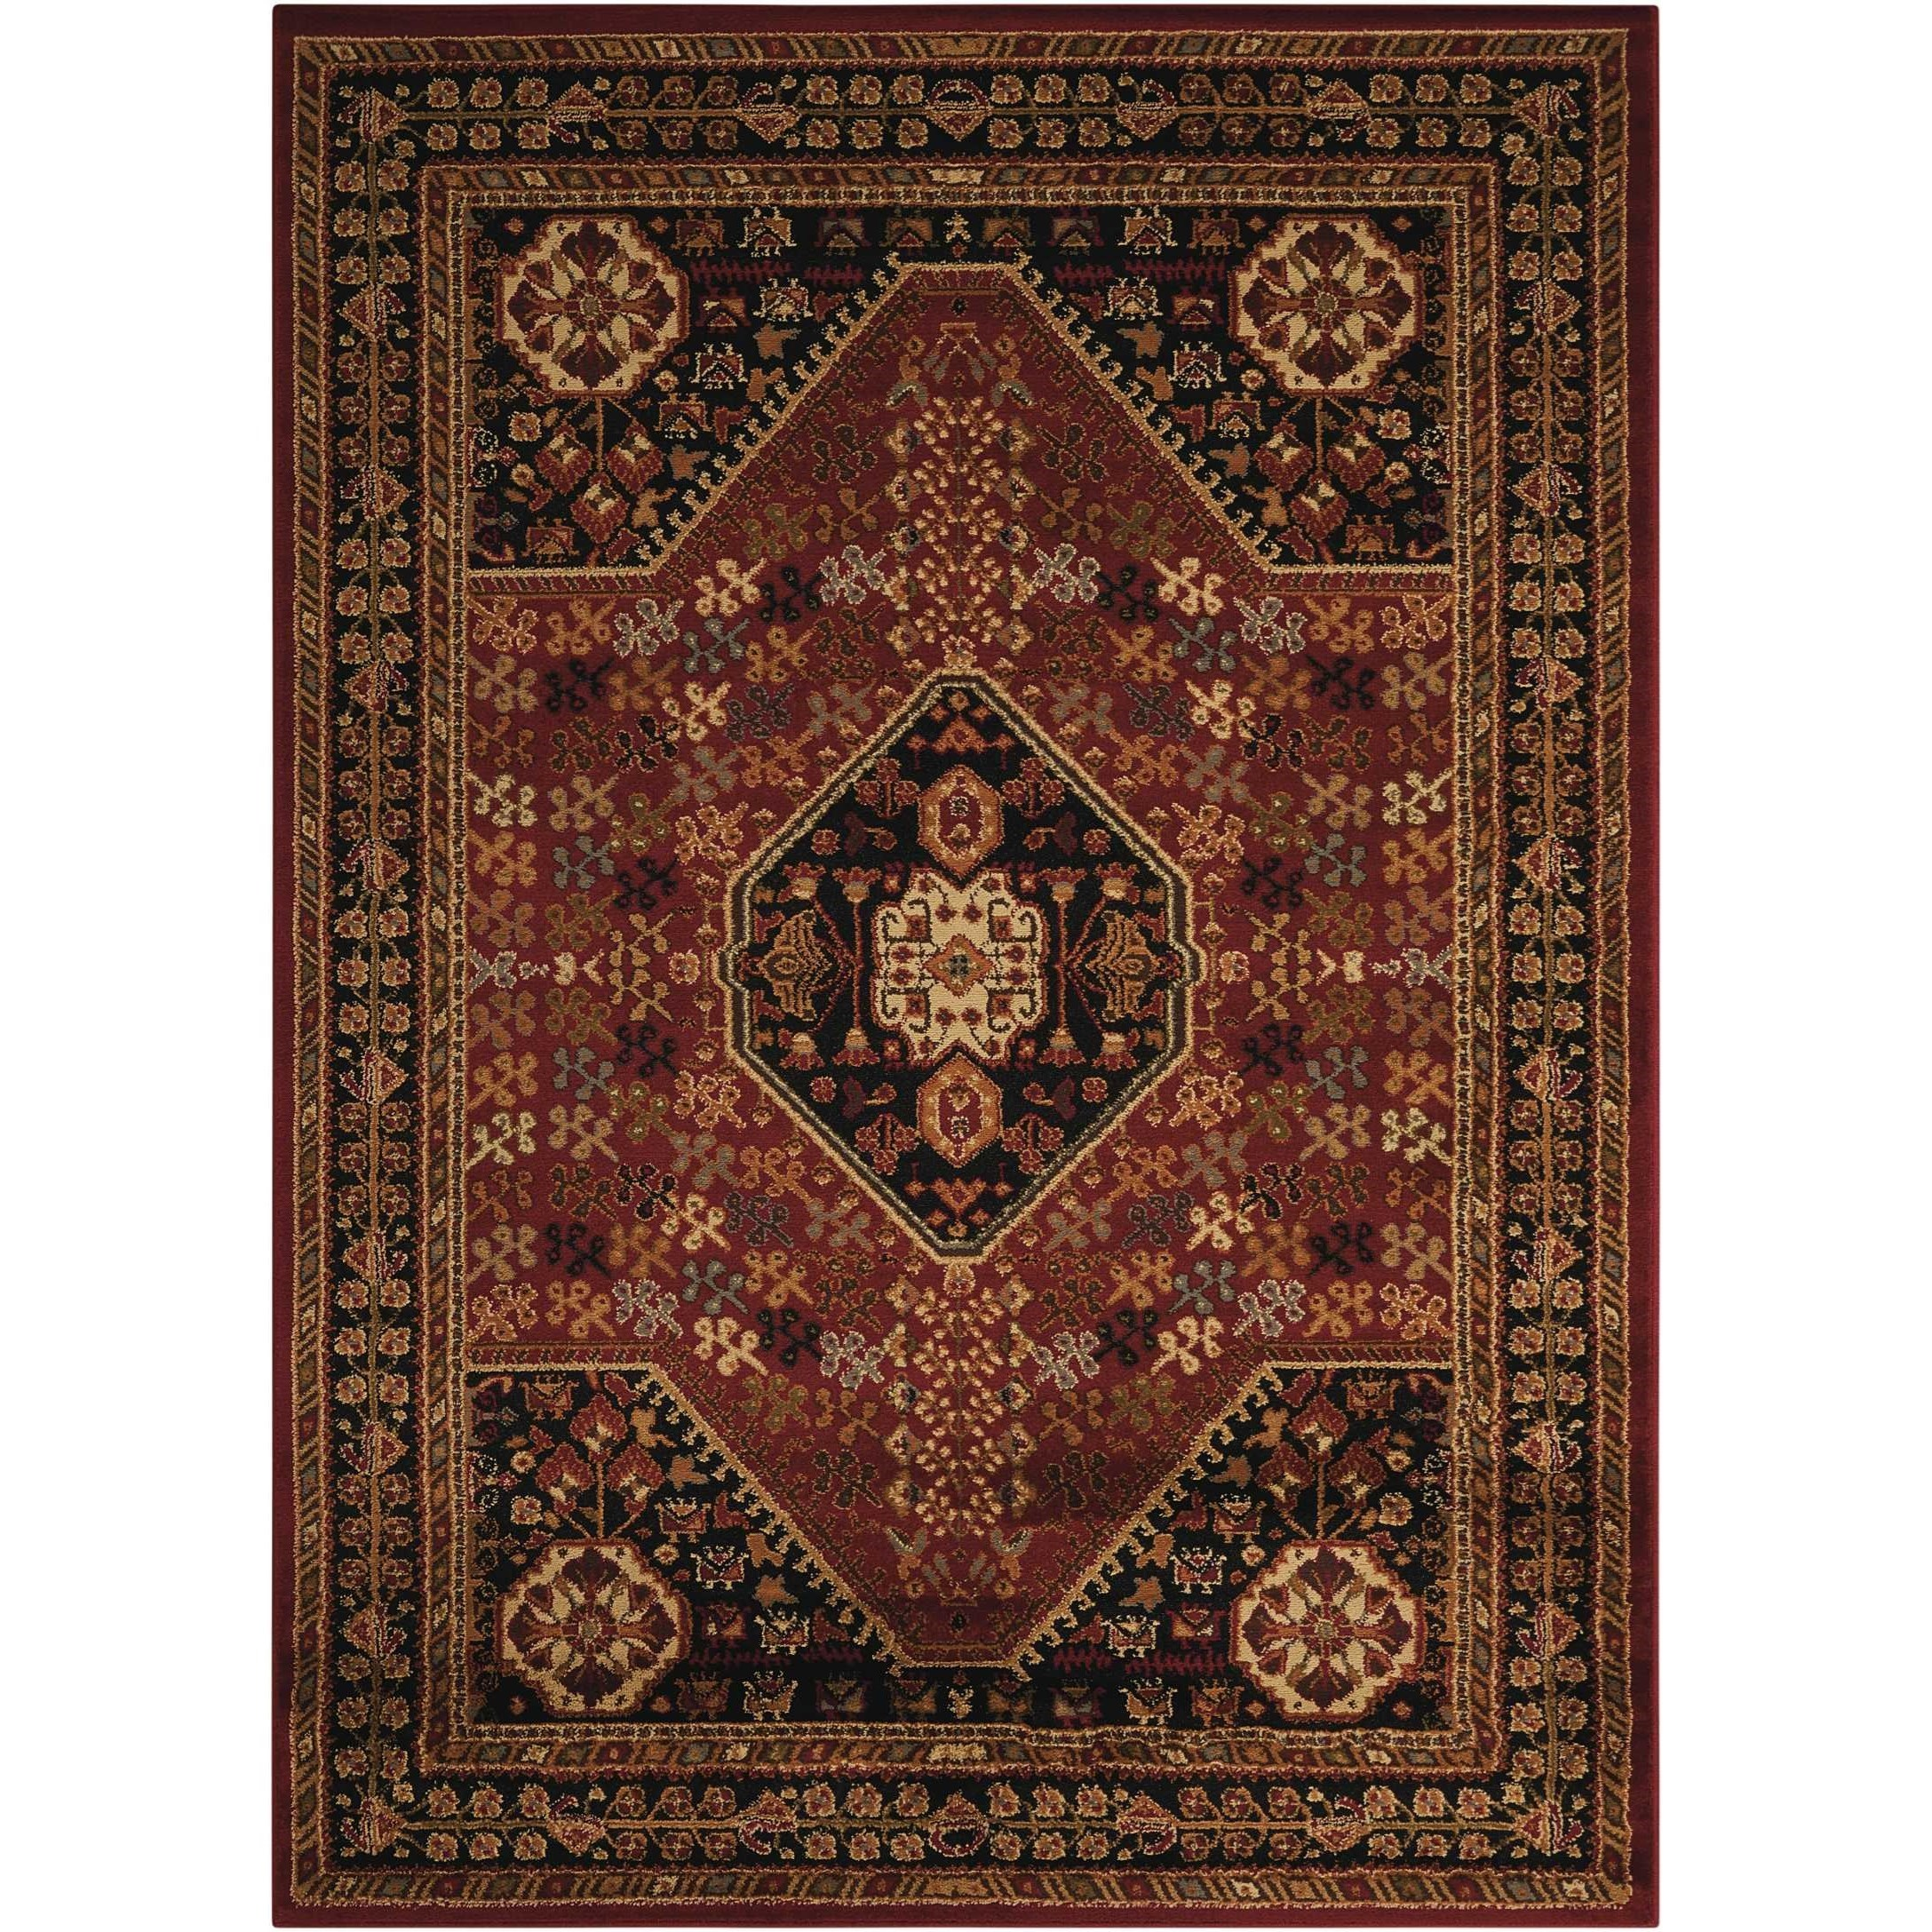 "Paramount 7'10"" x 10'6"" Red Rectangle Rug by Nourison at Home Collections Furniture"